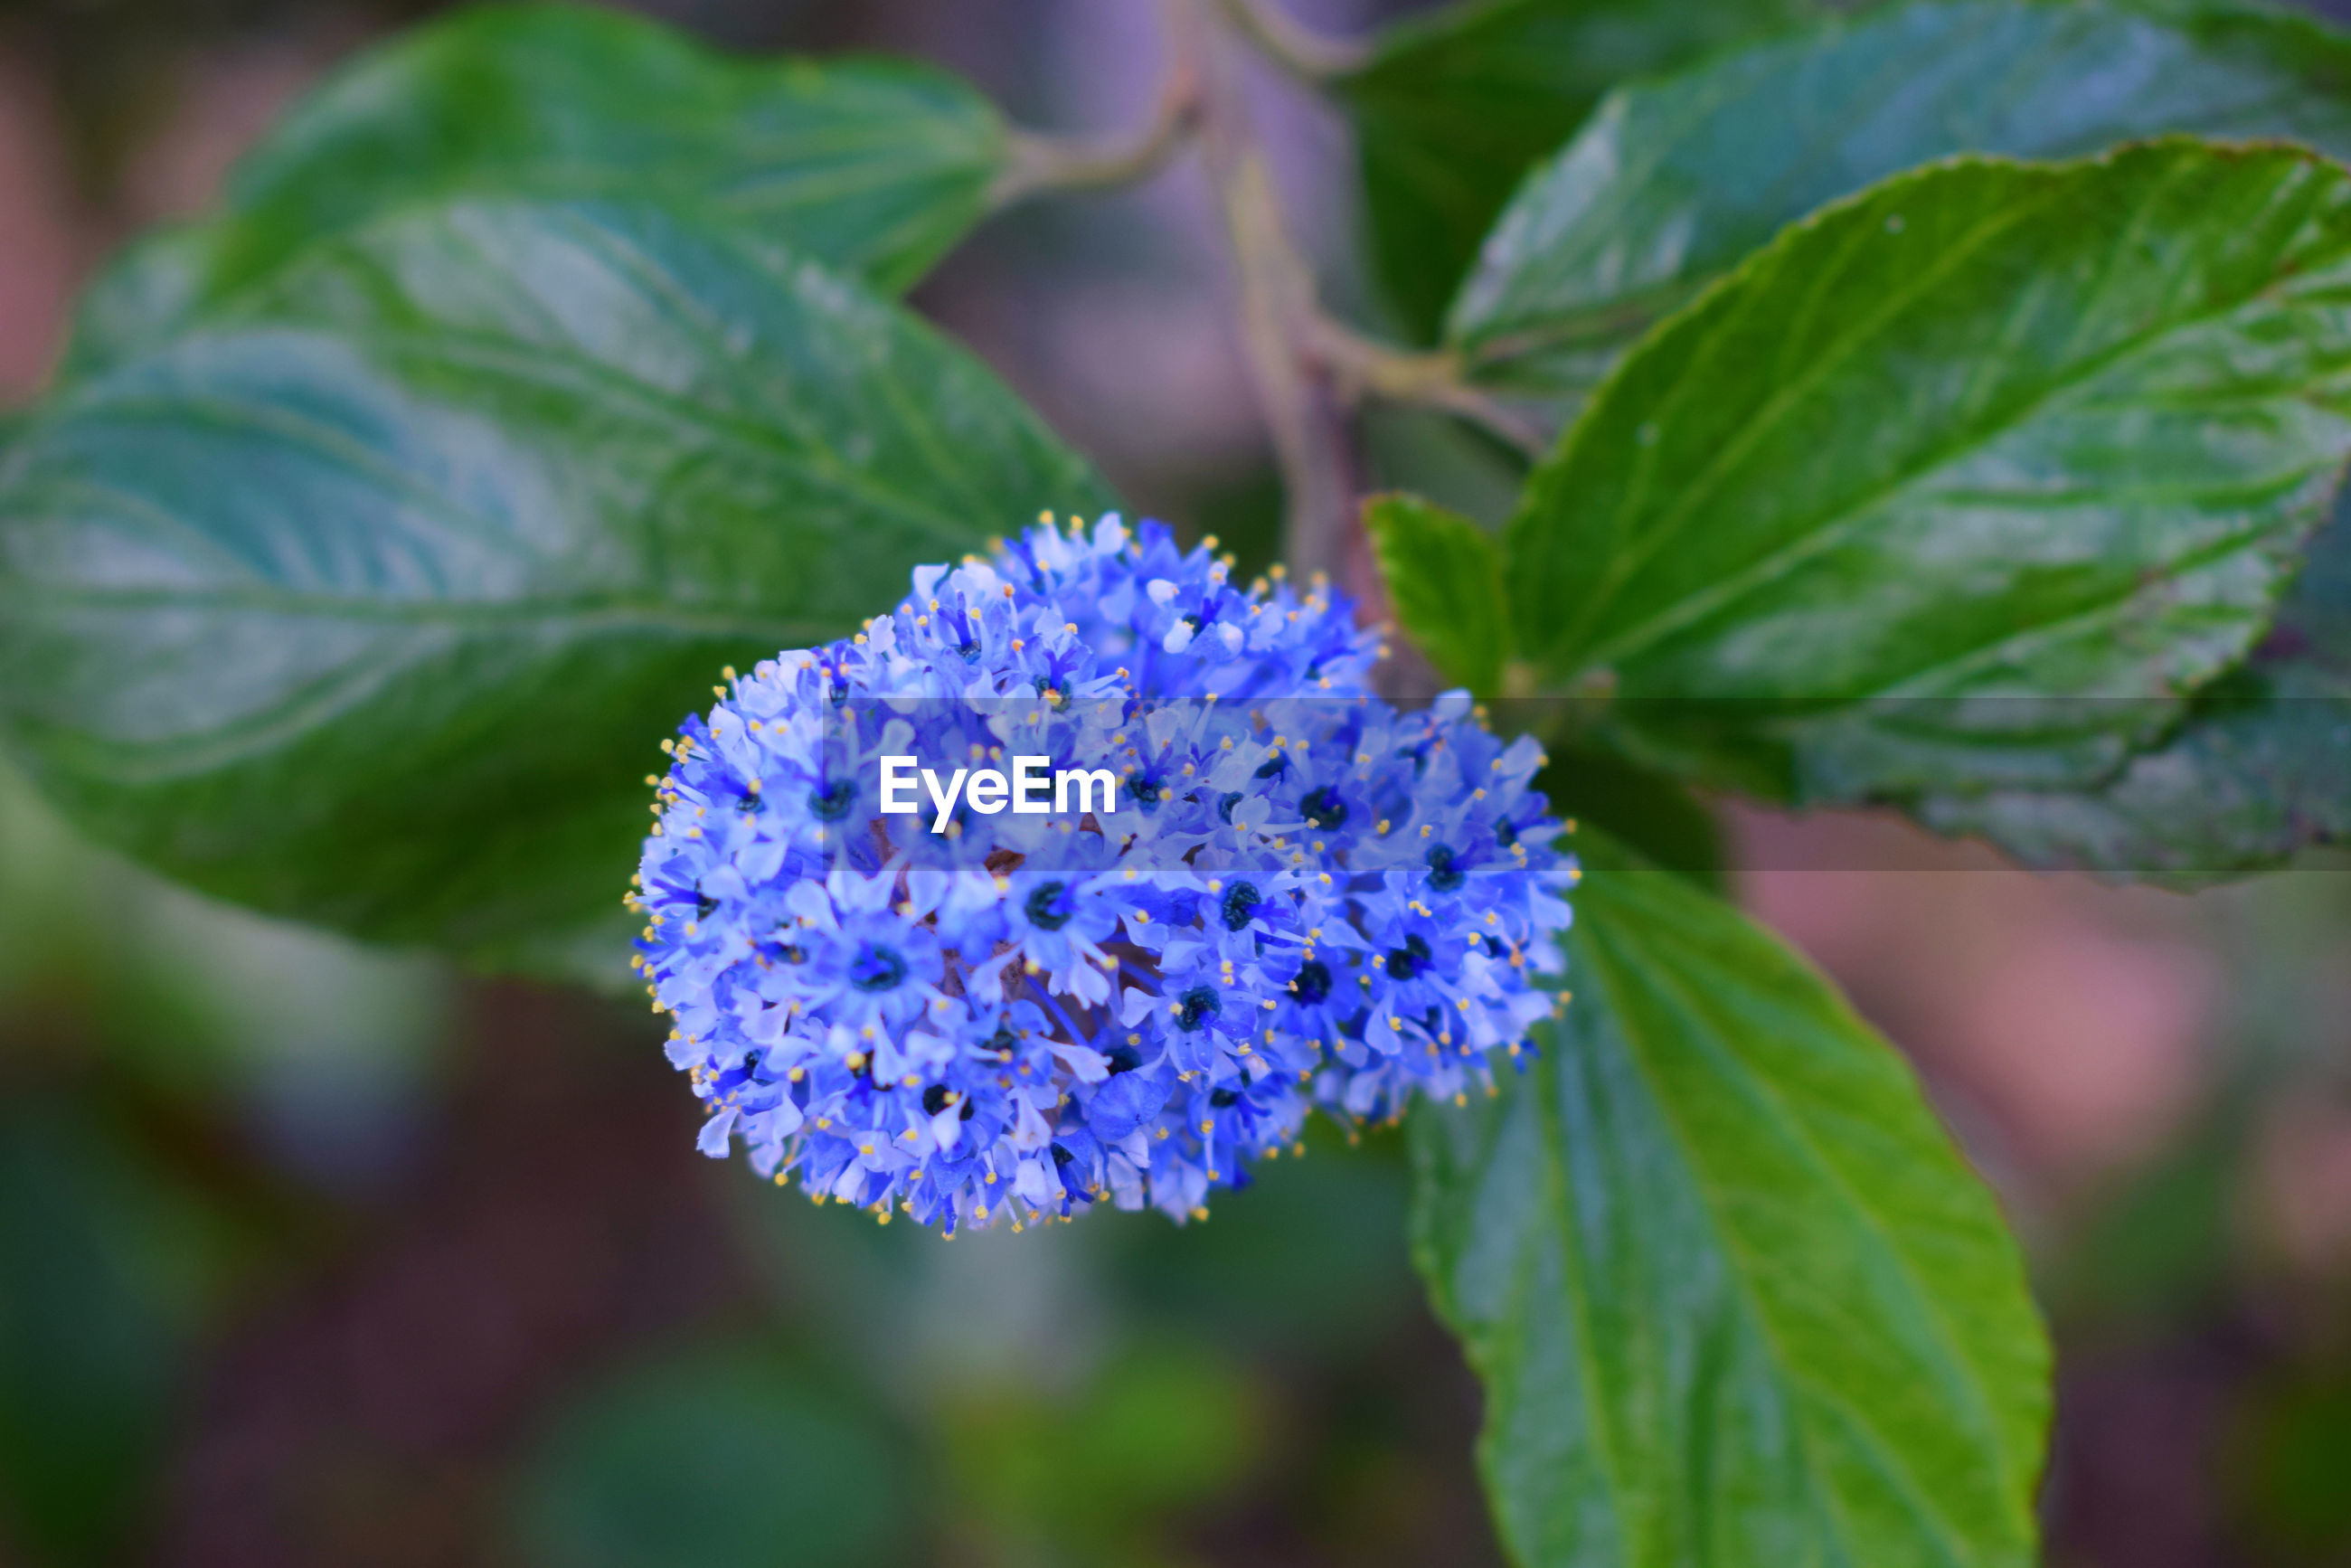 flower, growth, beauty in nature, freshness, nature, leaf, purple, petal, fragility, plant, green color, day, outdoors, flower head, no people, focus on foreground, close-up, blue, blooming